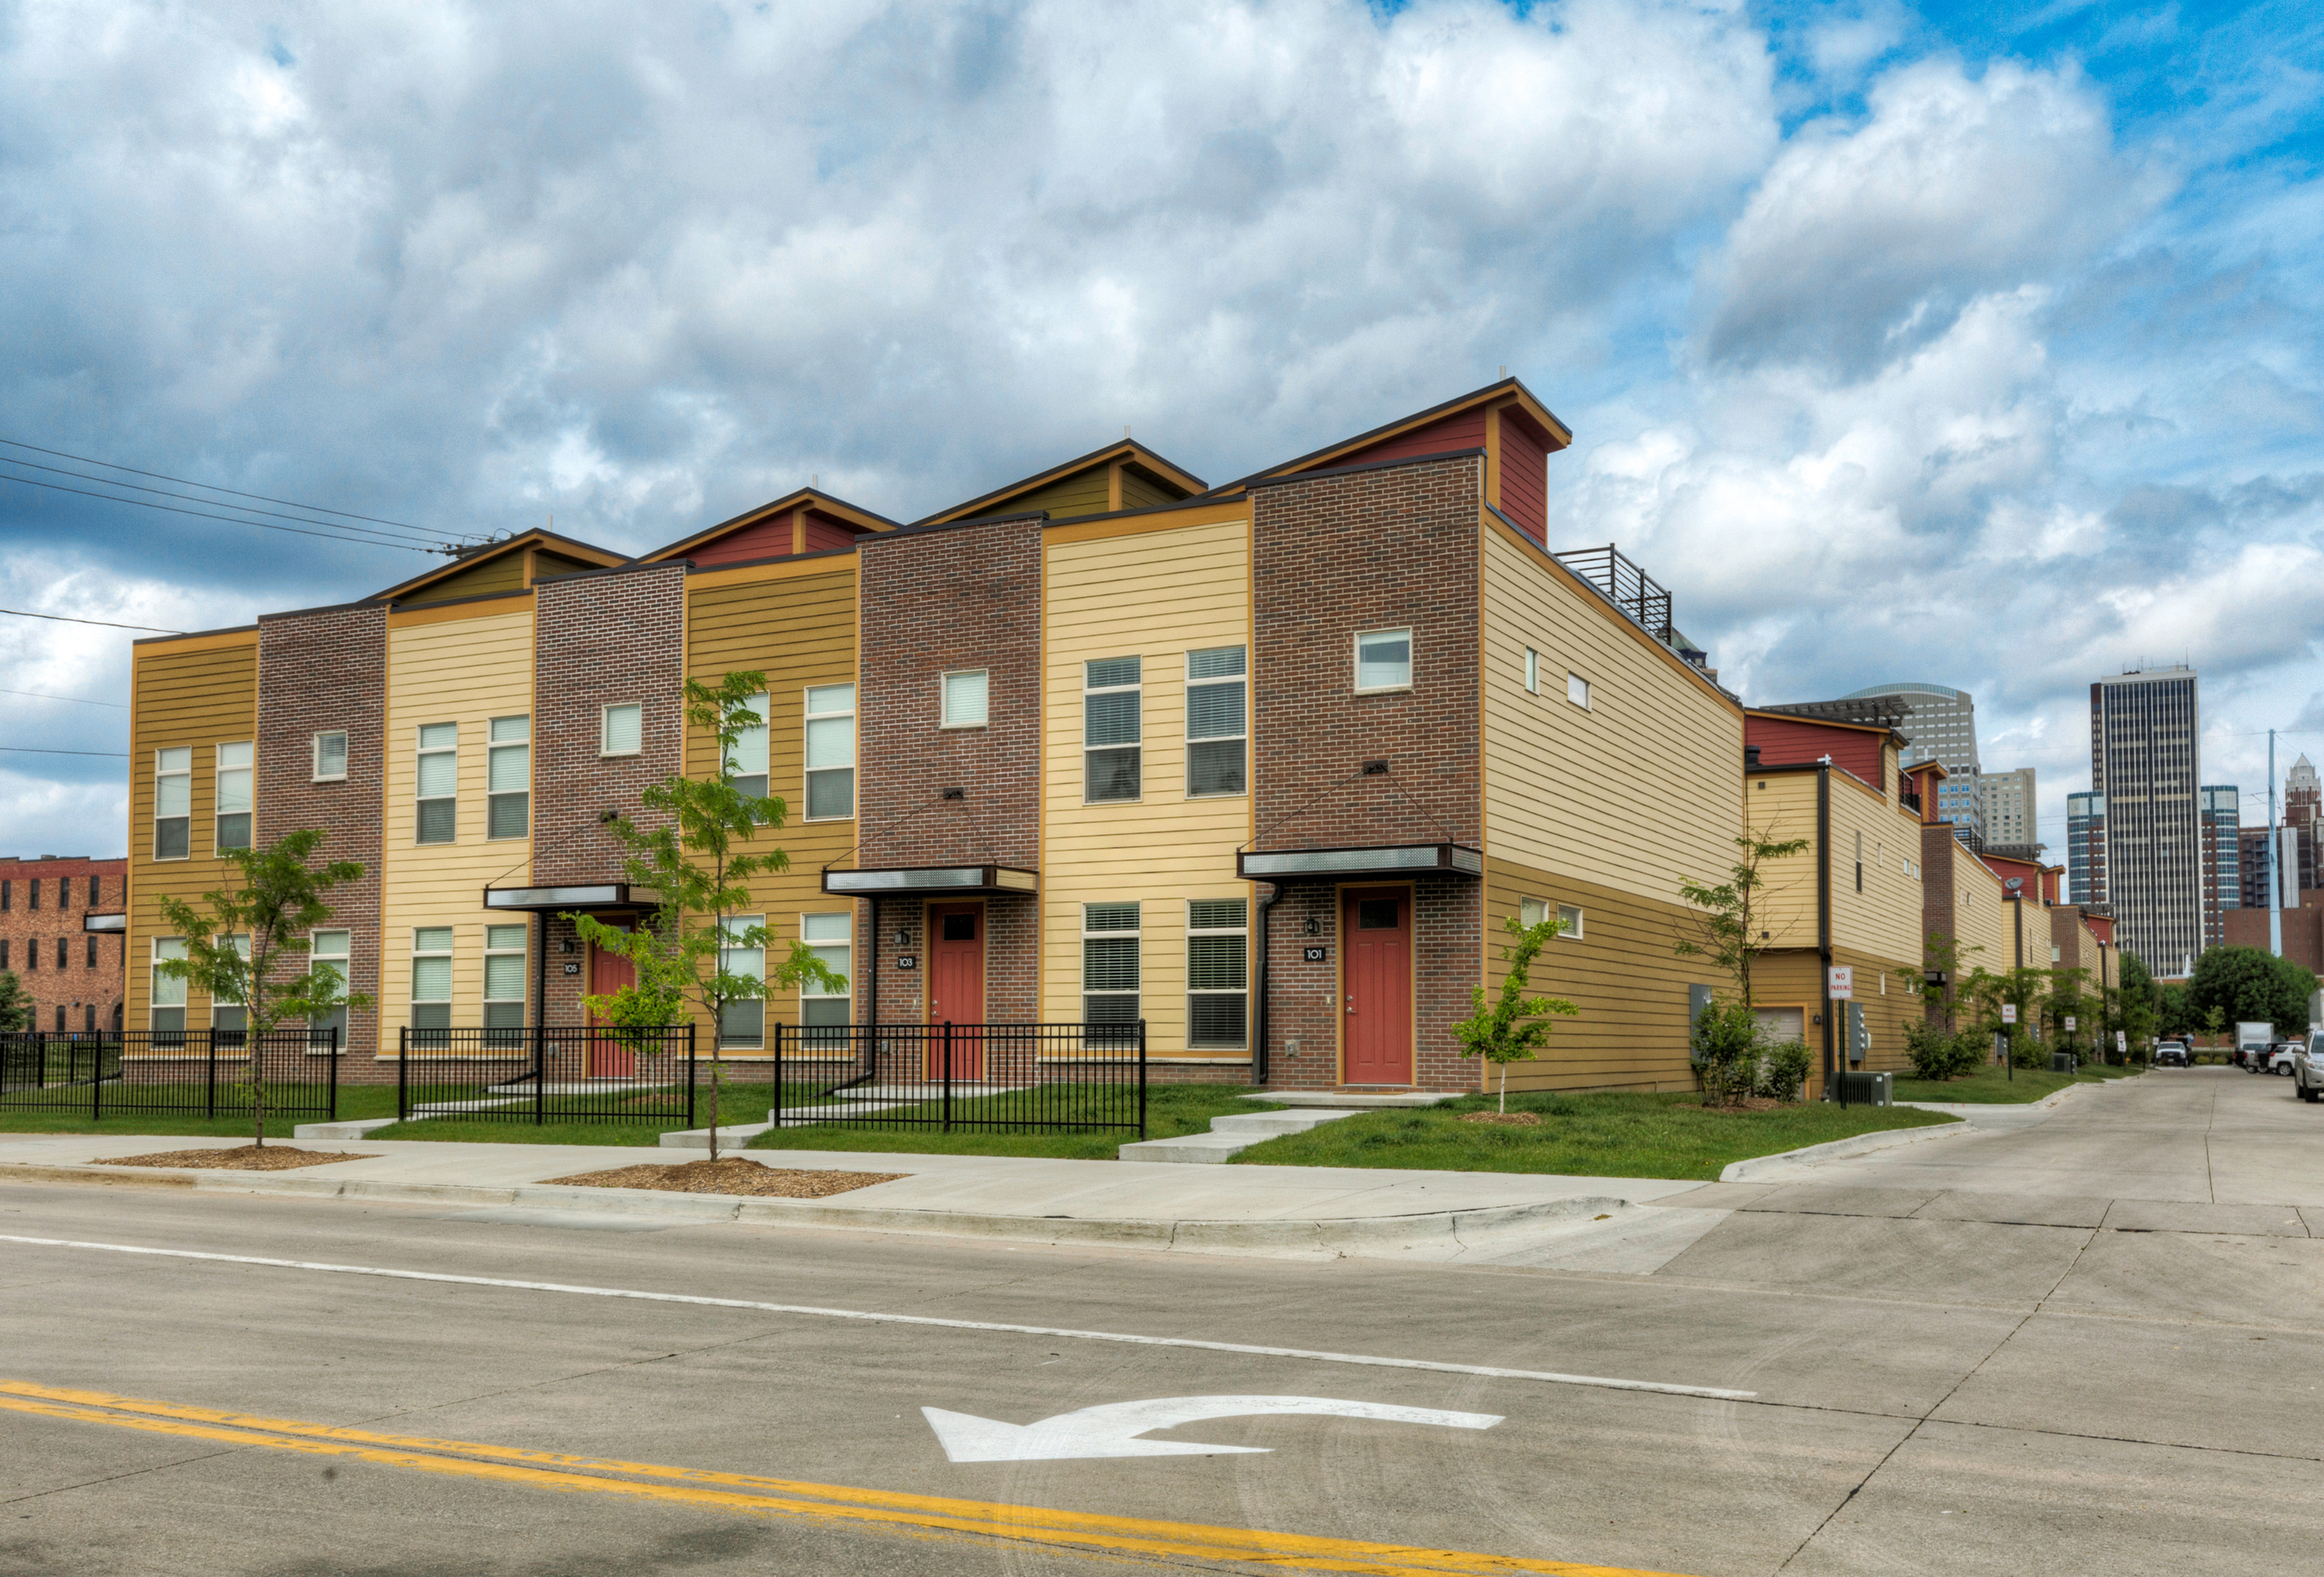 Apartments Near AIB College of Business 7th Street Brownstones for AIB College of Business Students in Des Moines, IA